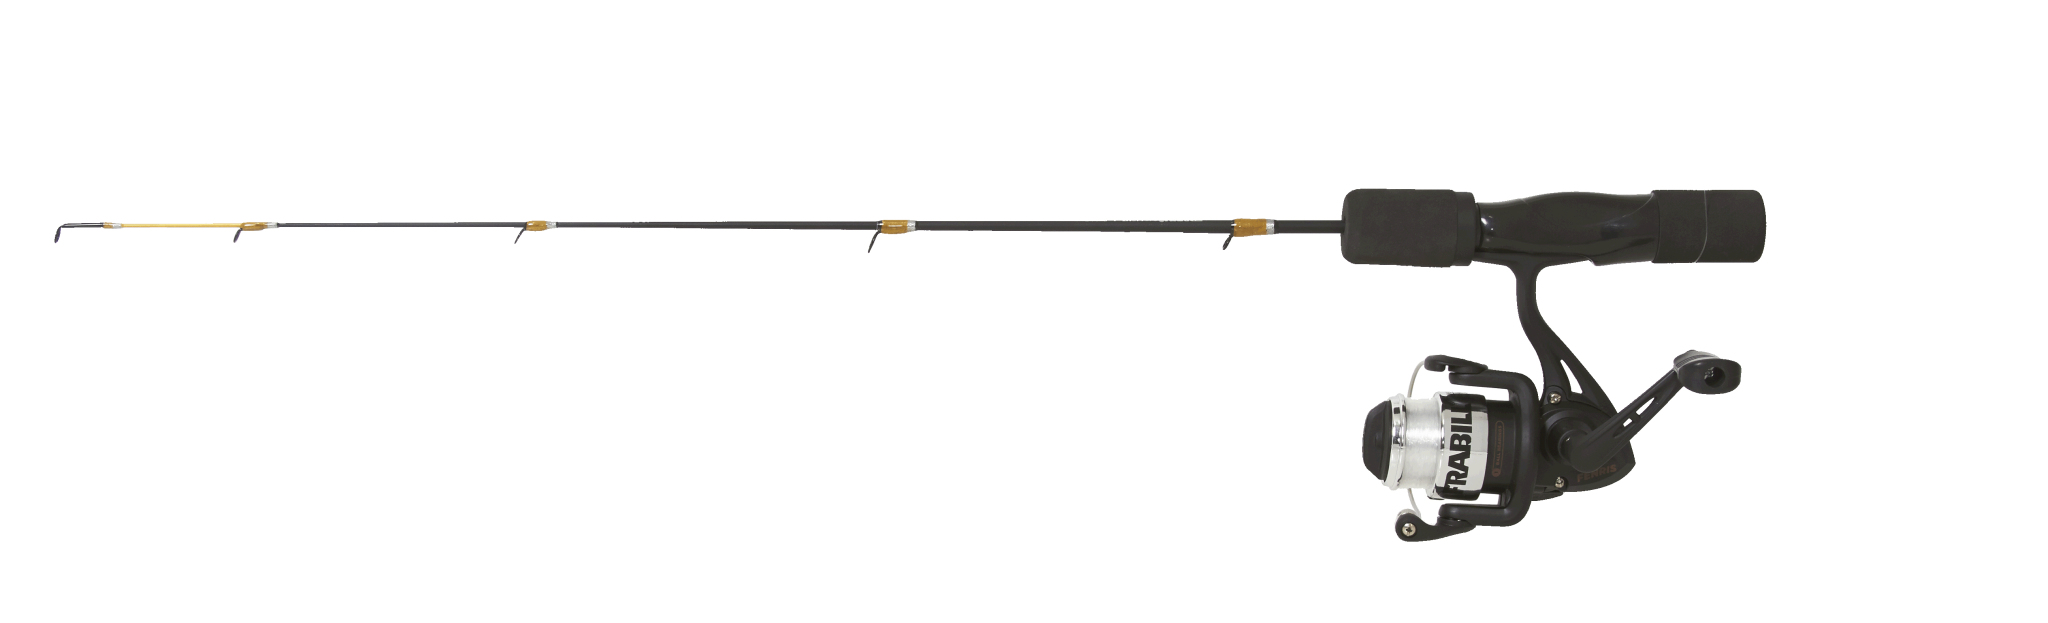 Frabill Fenris Spinning Reel Combo Premium Rod and Reel Ideal for Panfish and Other Light Jigging Fish